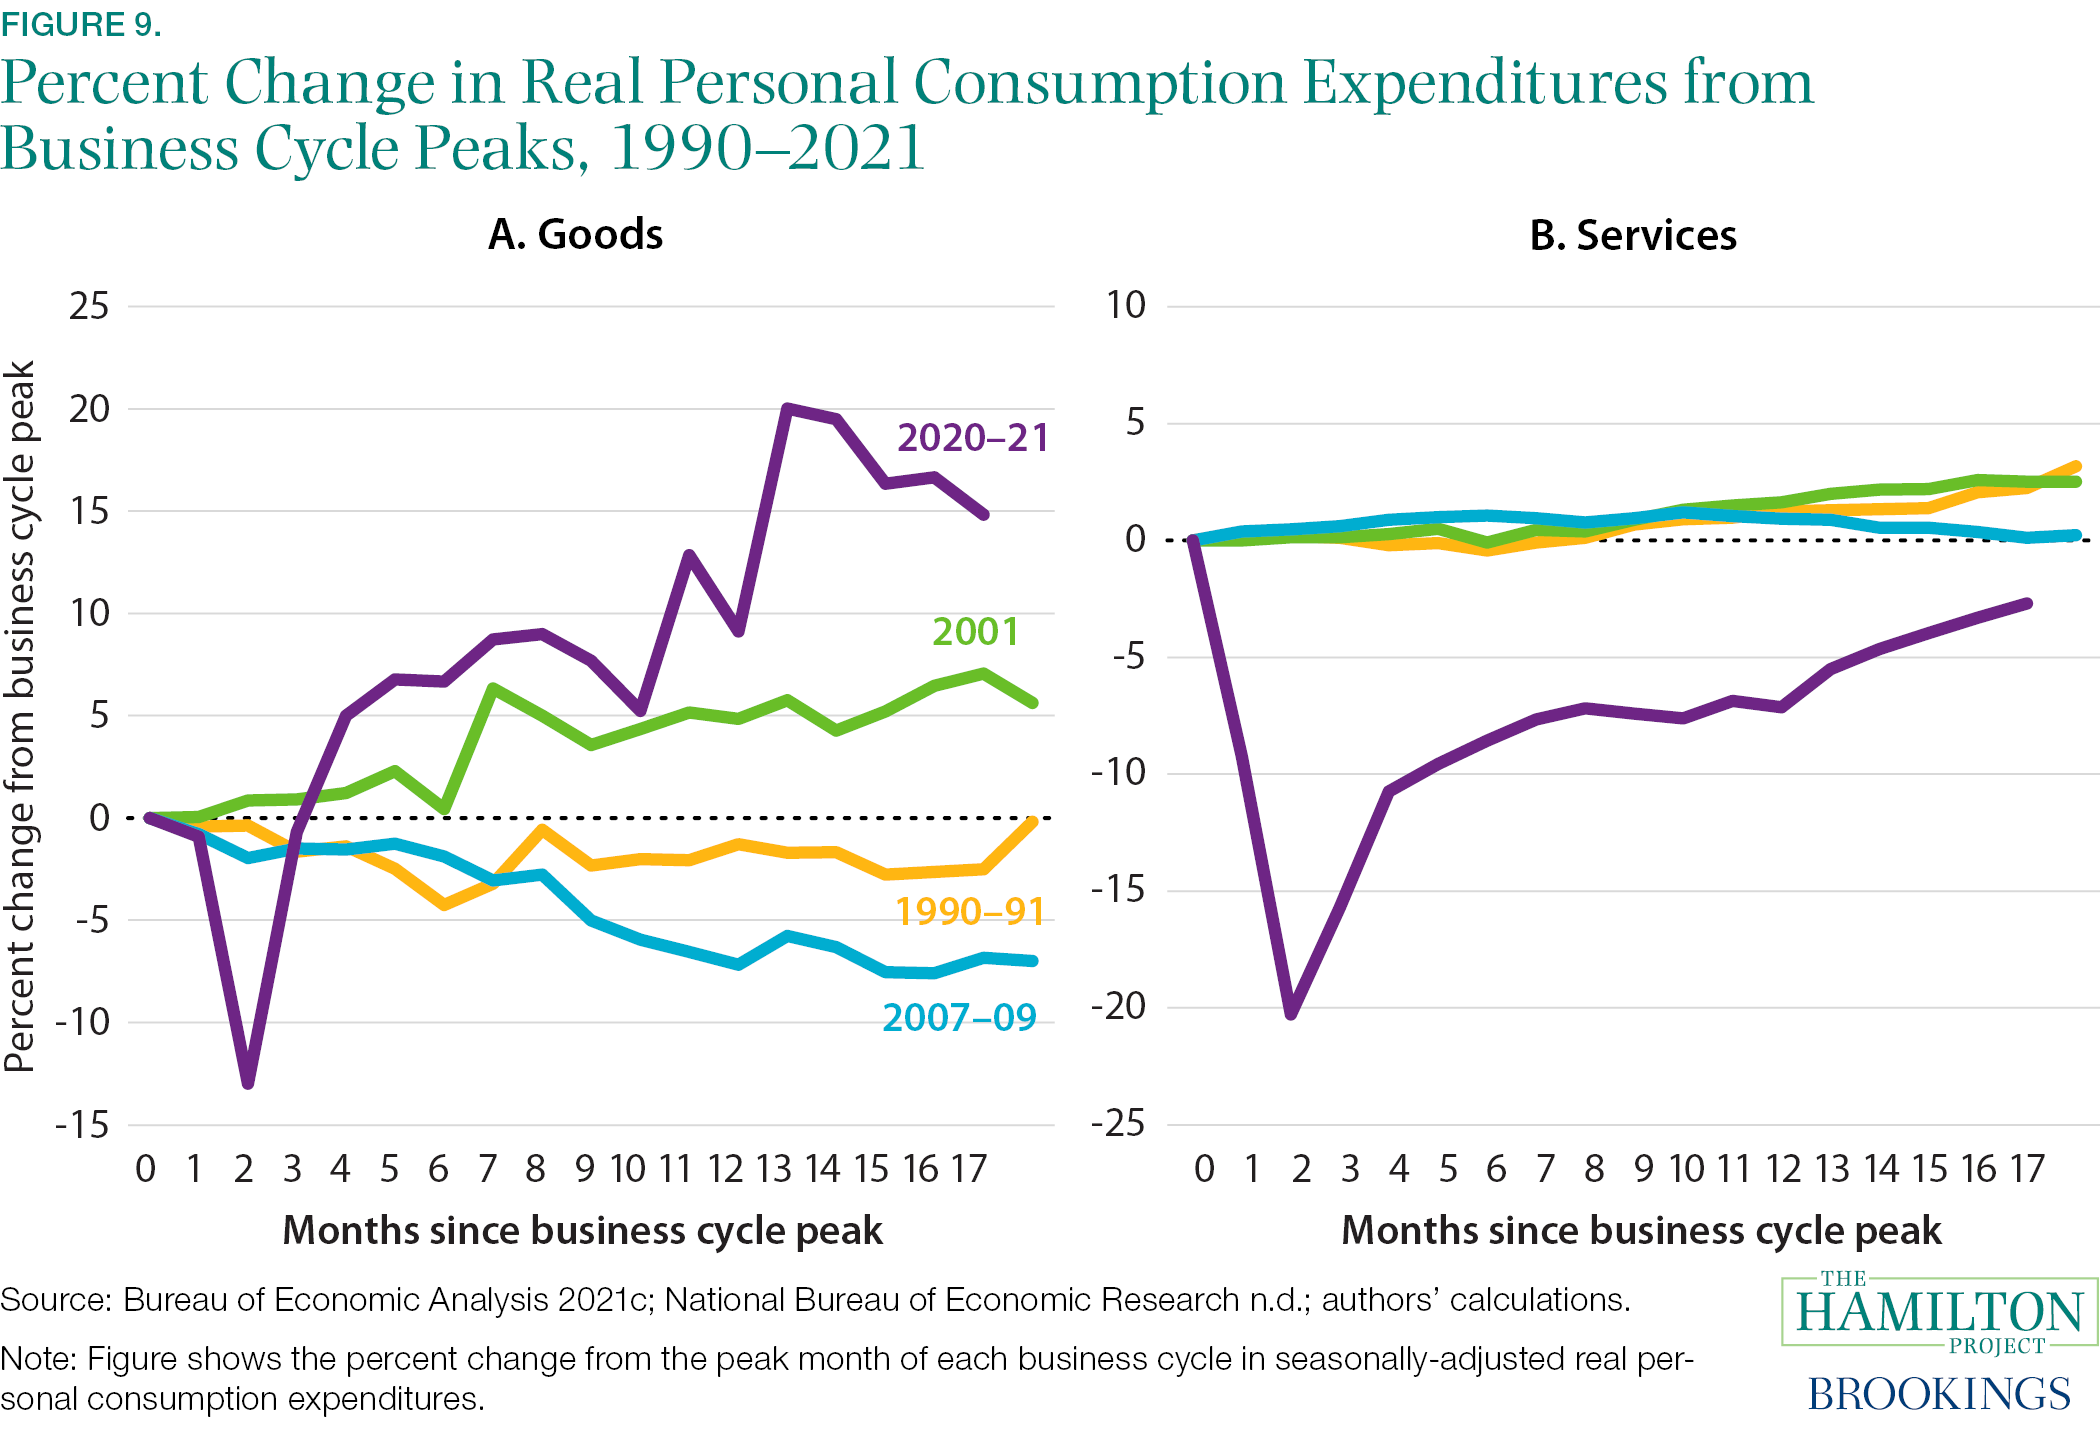 Fact 9: The strength in durable goods spending and weakness in spending on consumer services stands in sharp contrast to previous recoveries.